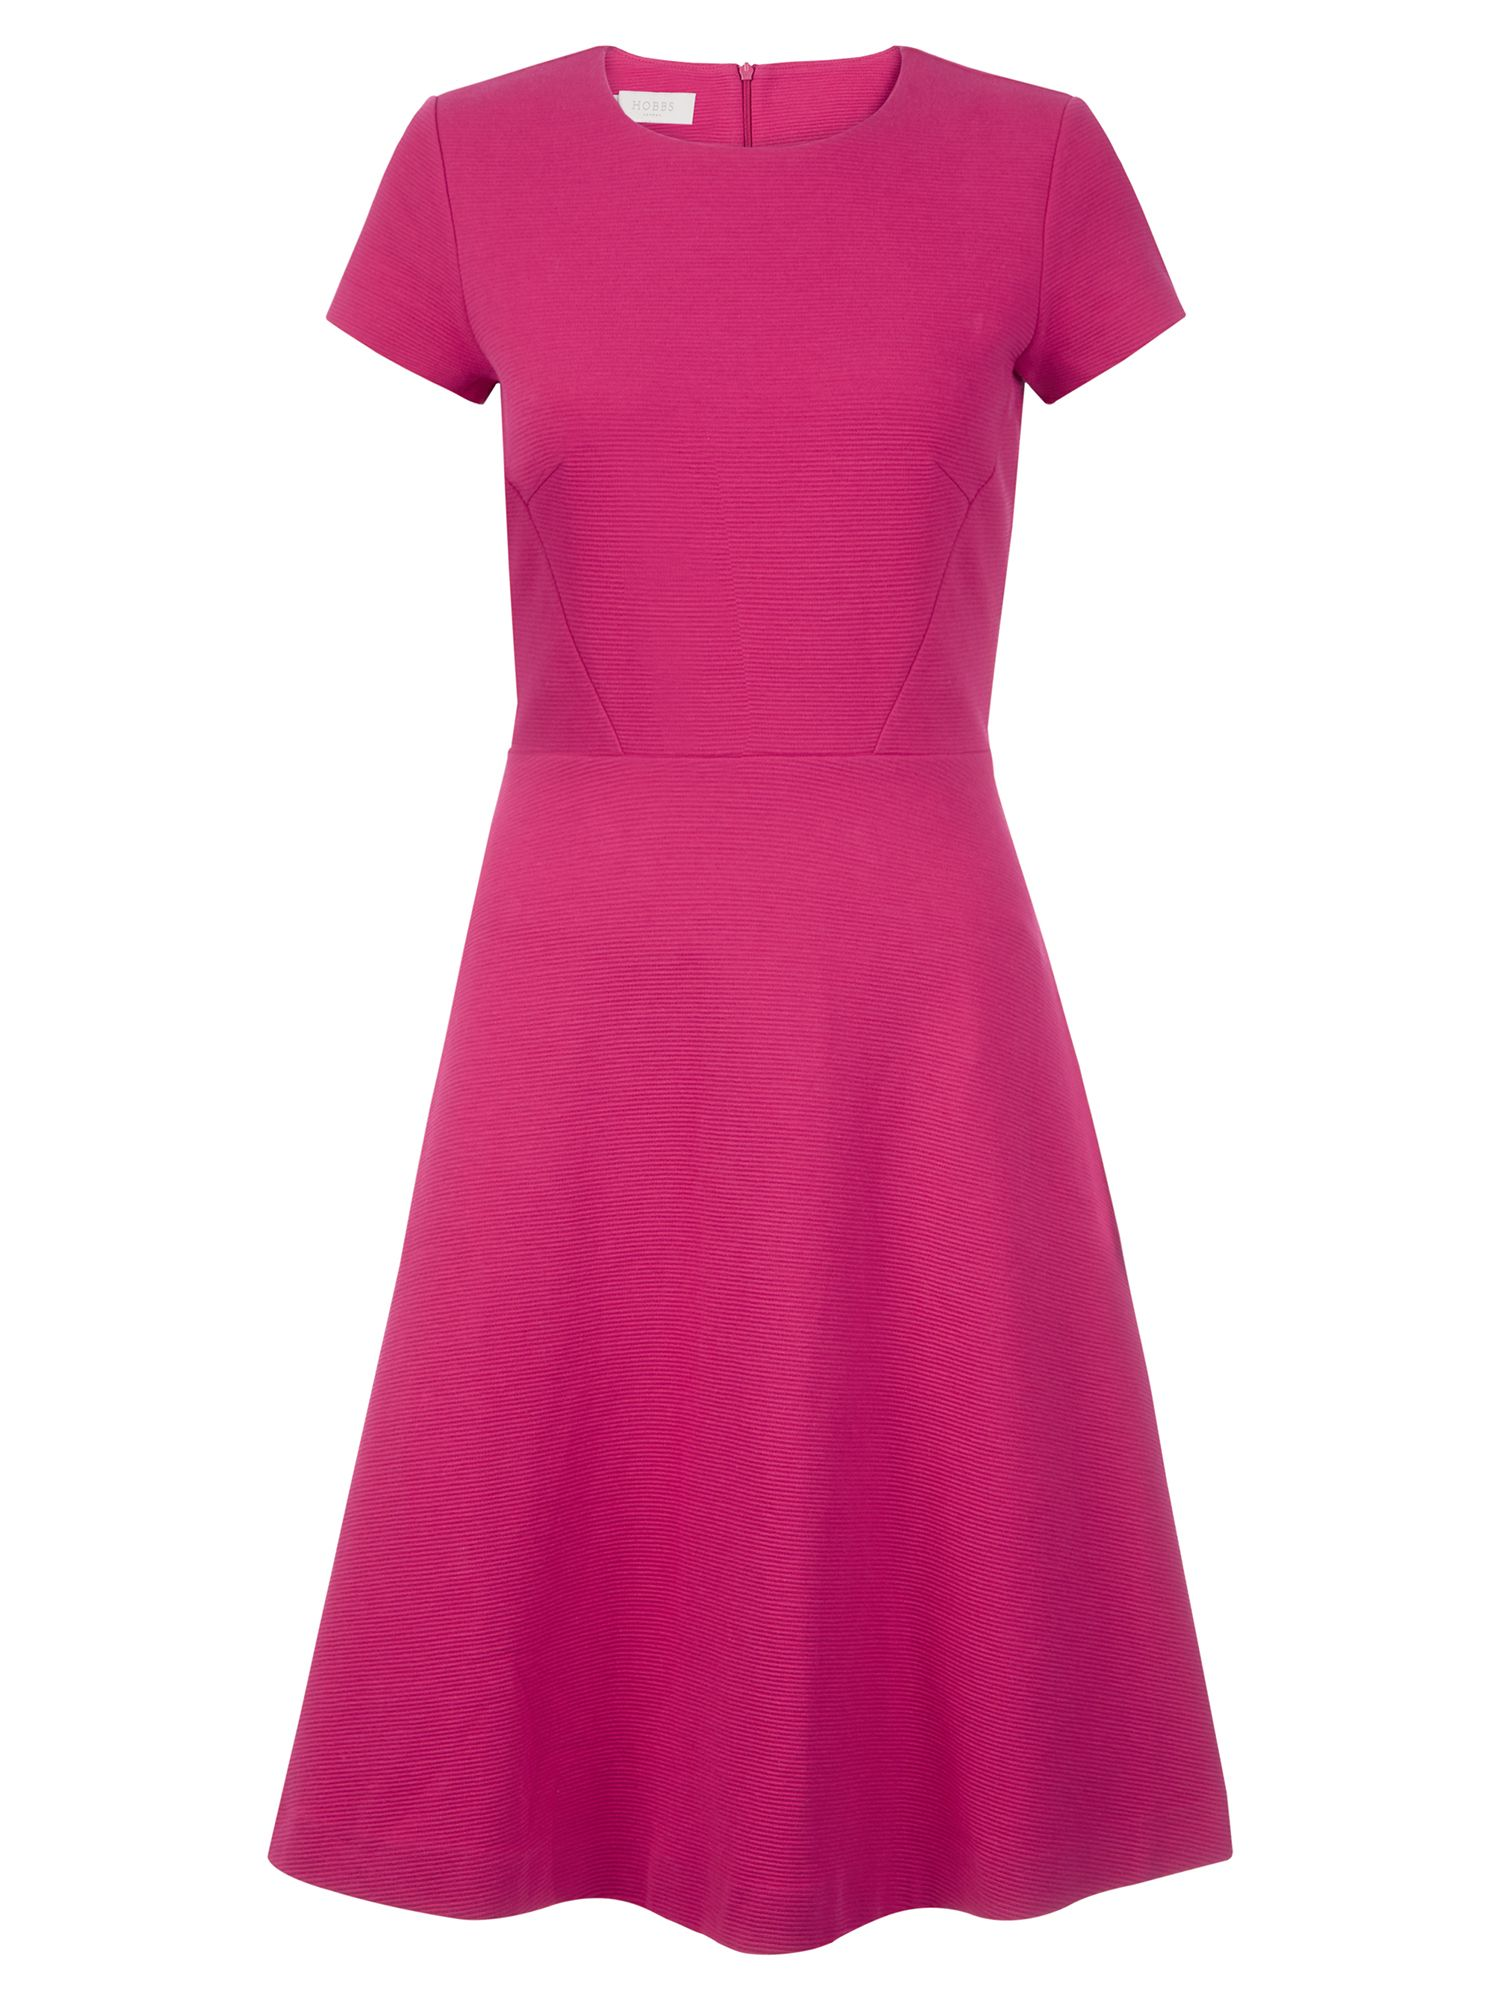 Hobbs Matilda Dress, Dark Pink